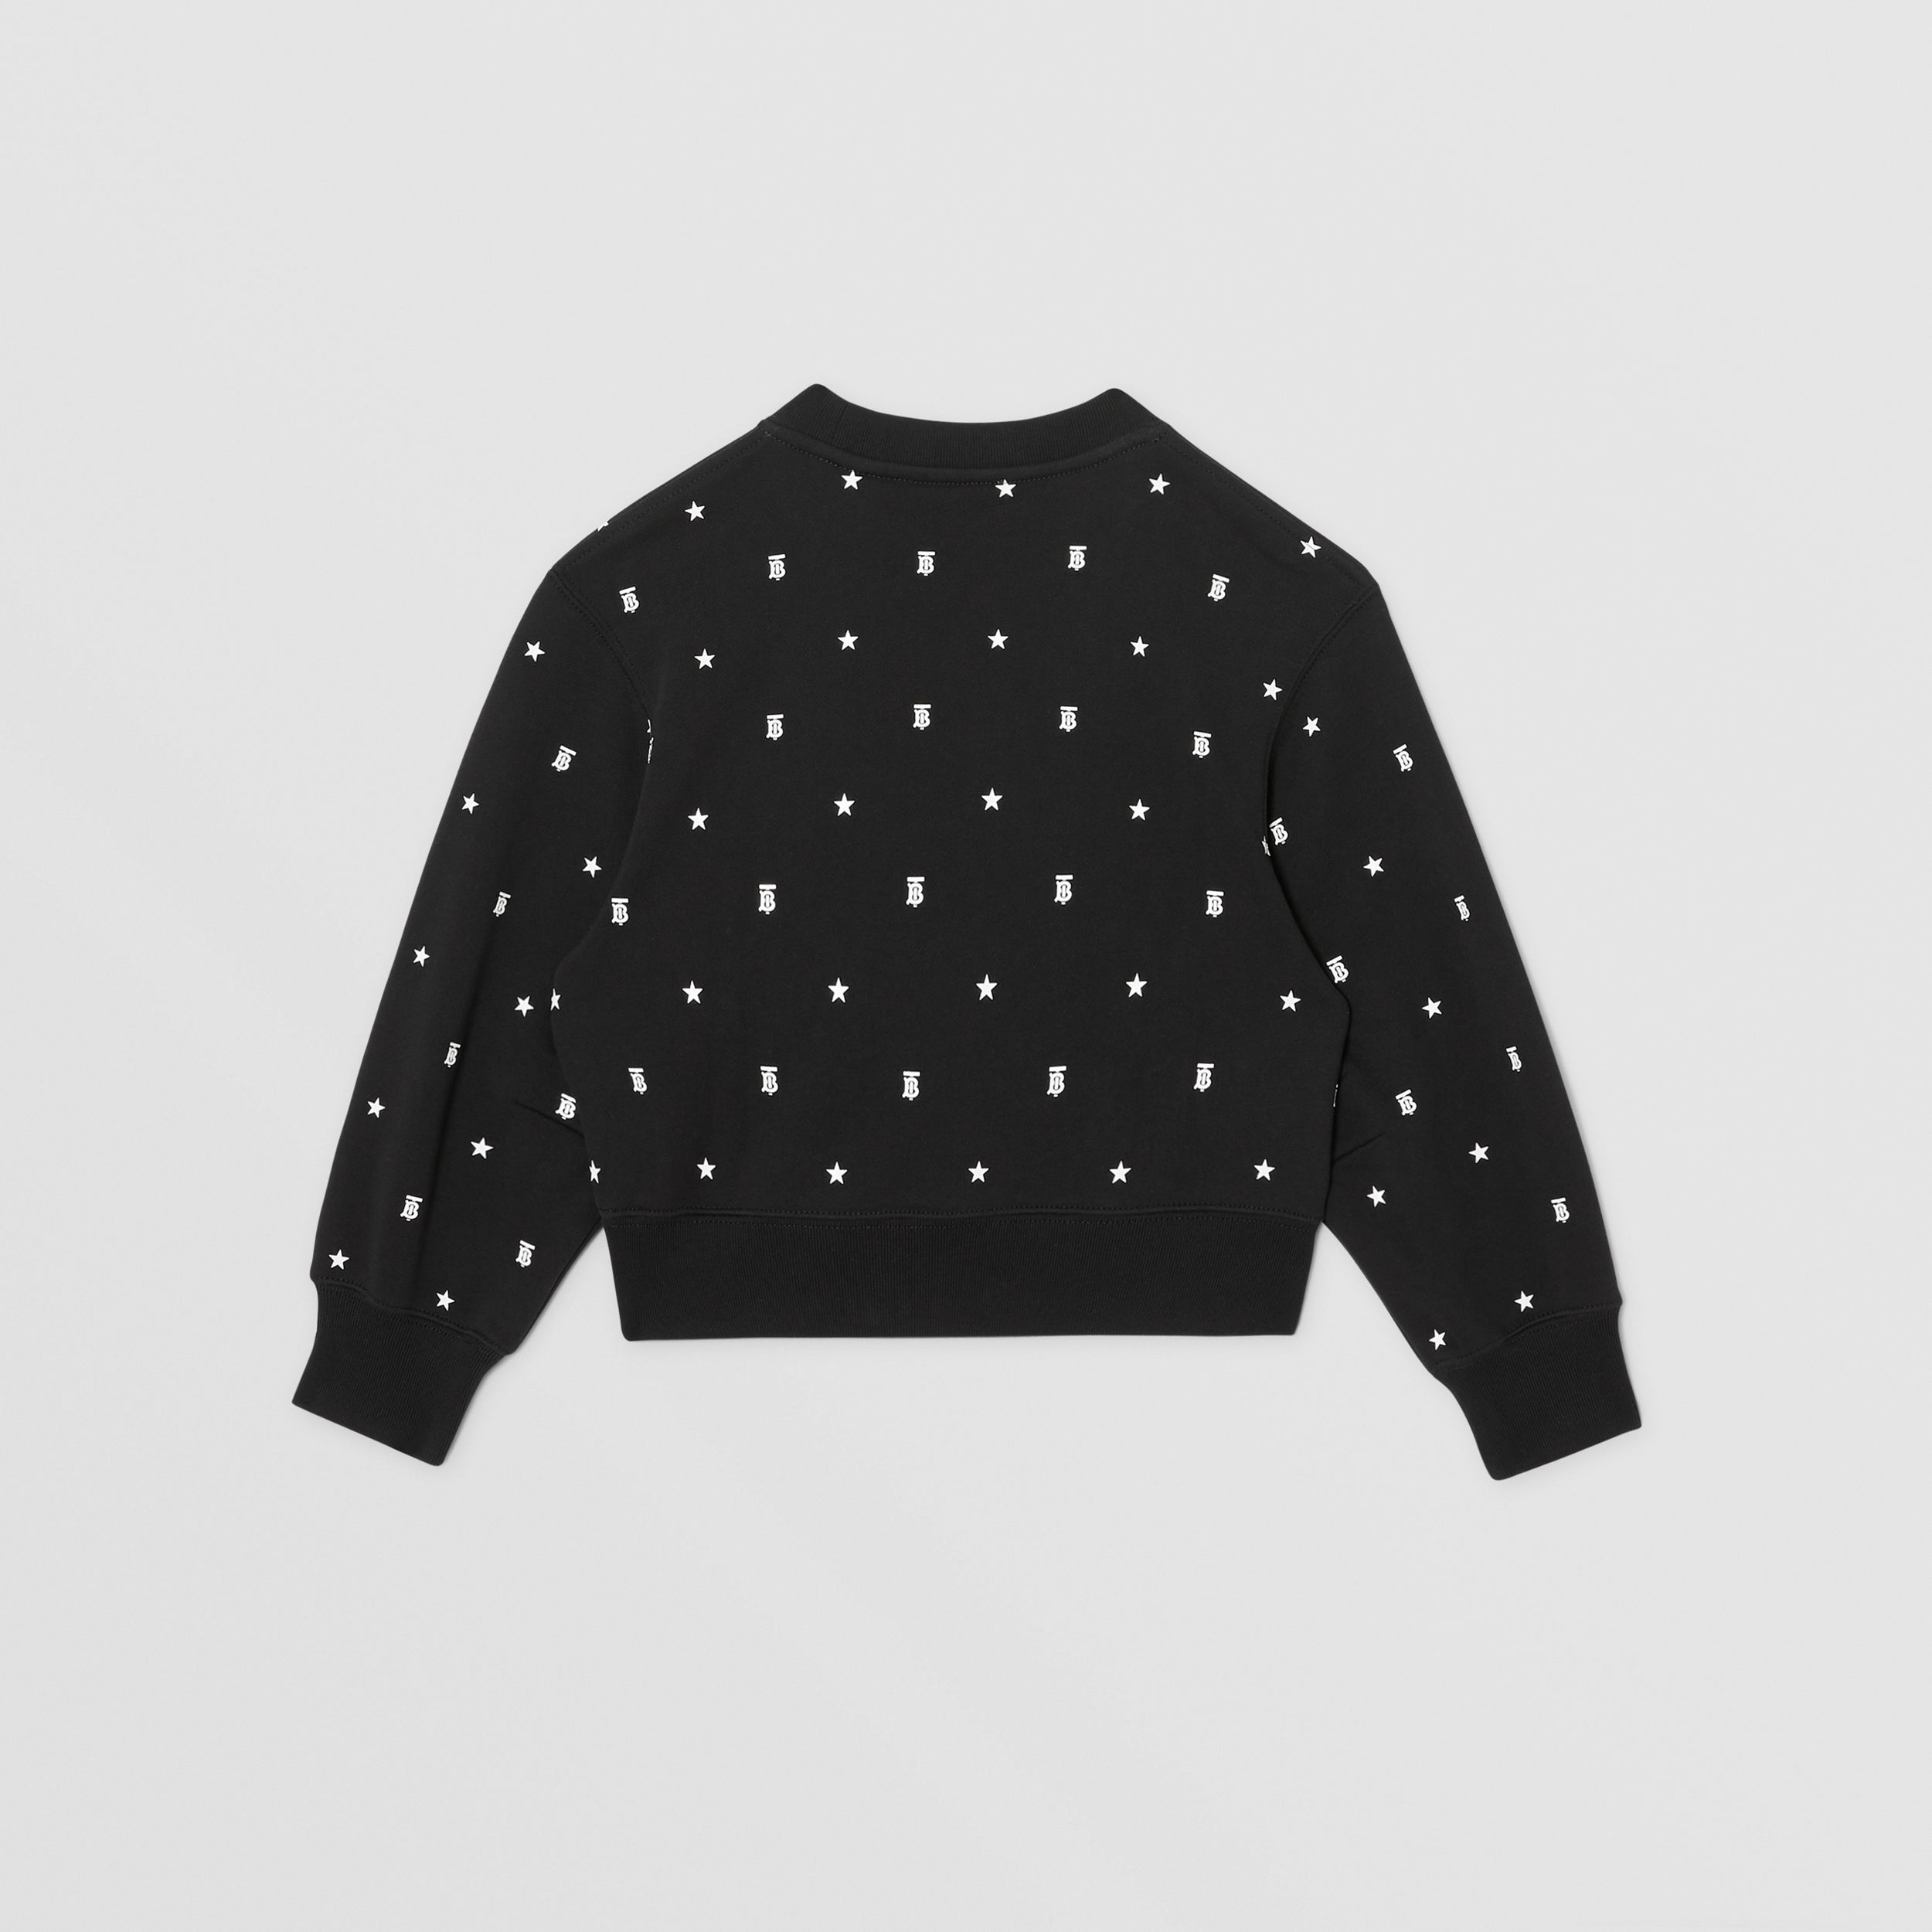 Star and Monogram Motif Cotton Sweatshirt in Black | Burberry - 3